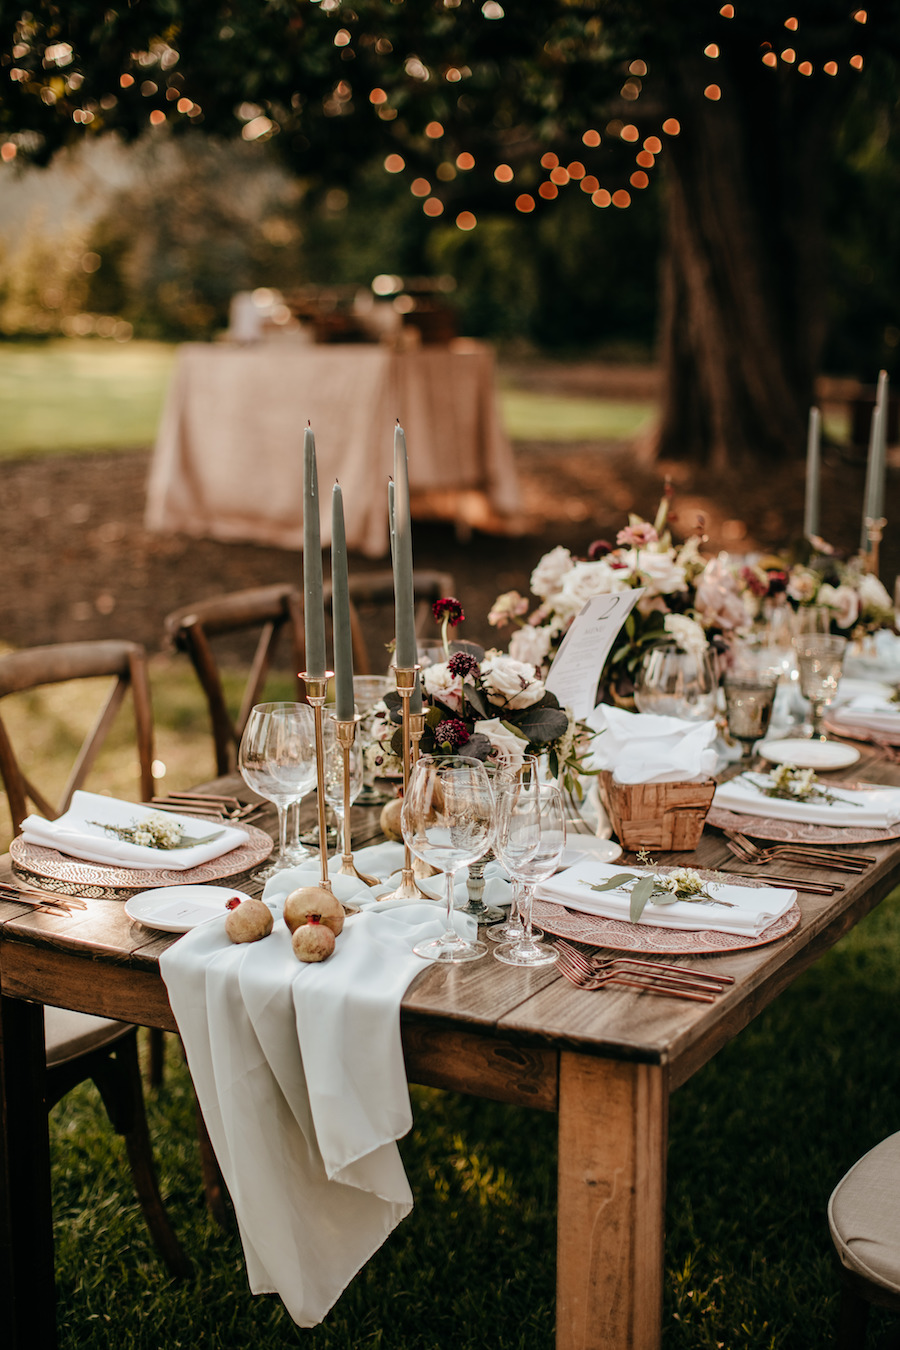 Jennifer and Jared's Chic Copper-Toned Wedding at Chateau St. Jean23.jpg